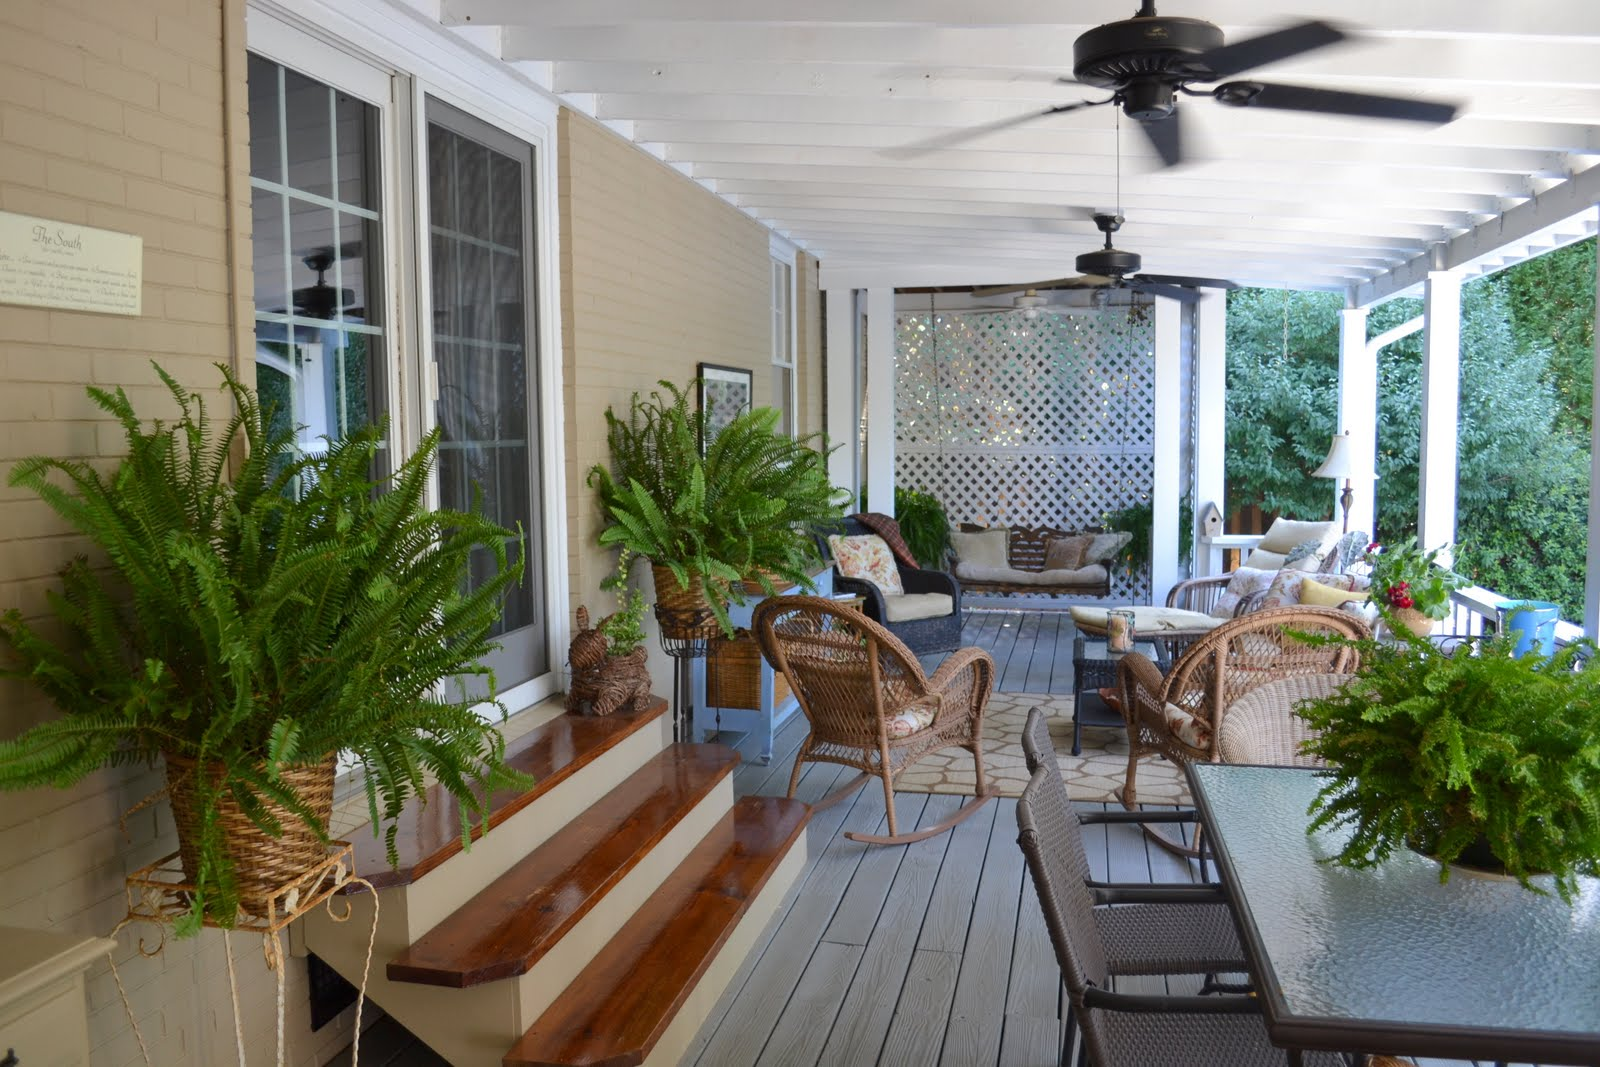 A Covered Back Porch Filled With Vintage Goodies ... on Covered Back Deck Designs id=93334